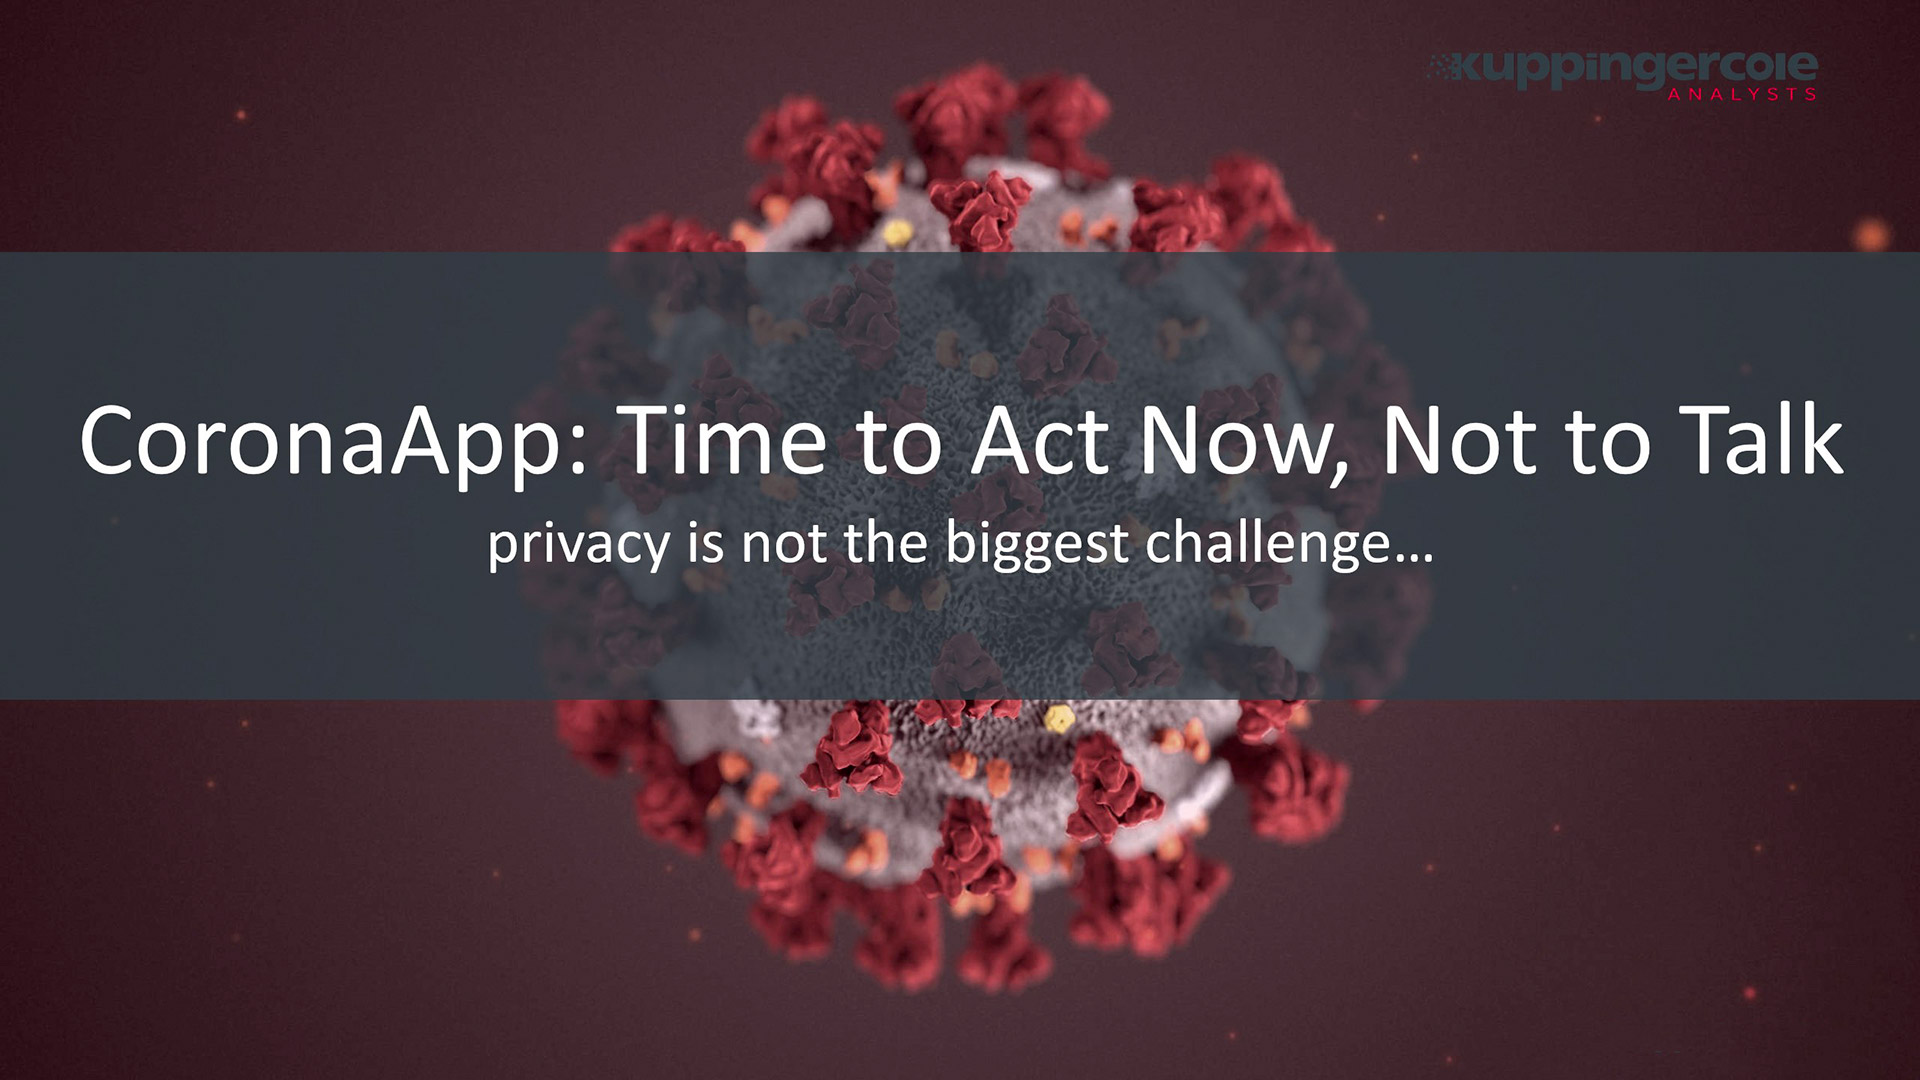 CoronaApp: Time to Act Now, Not to Talk